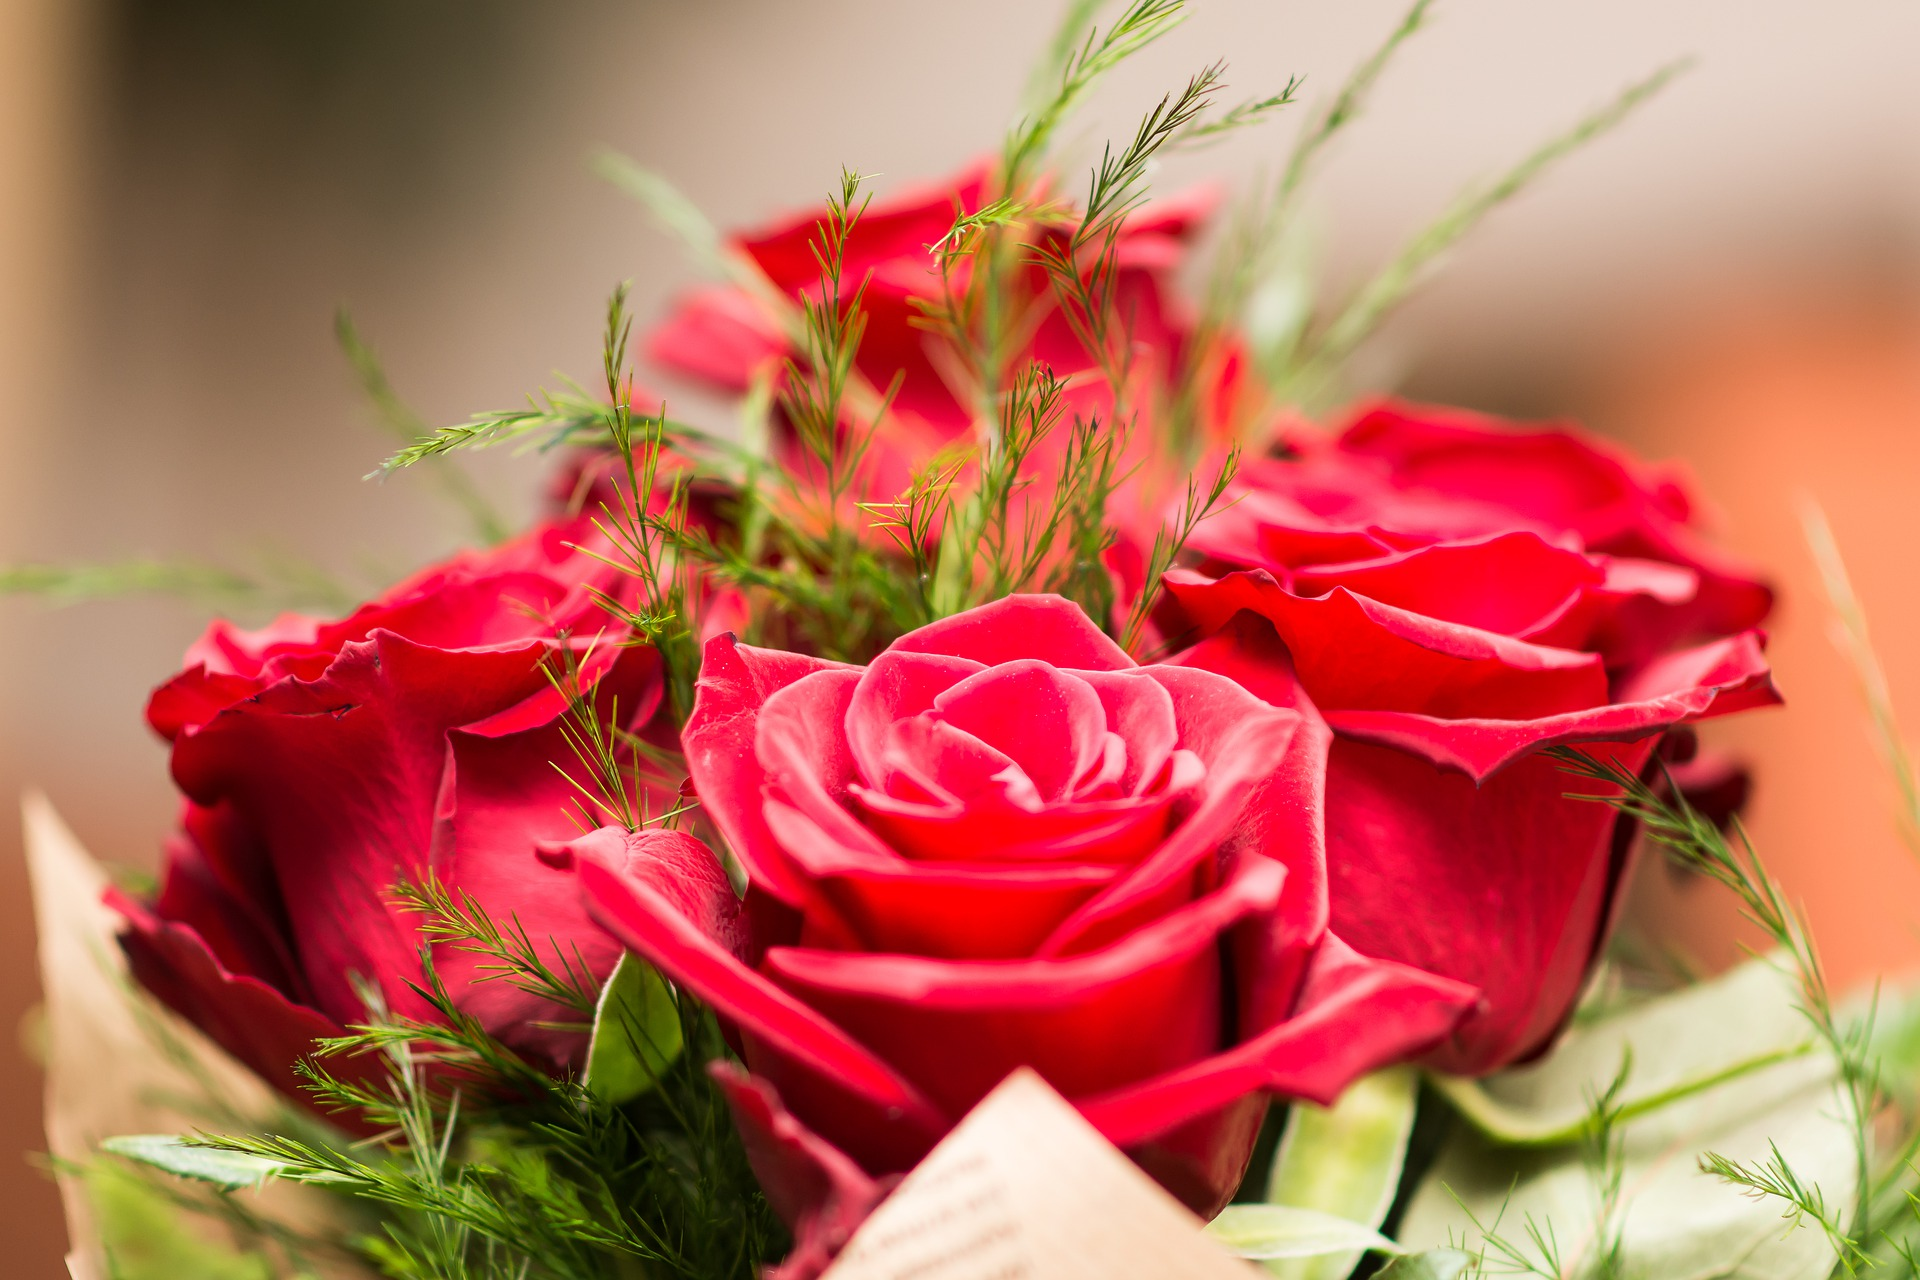 Valentine's Day Quiz: Red Roses Symbolize Love